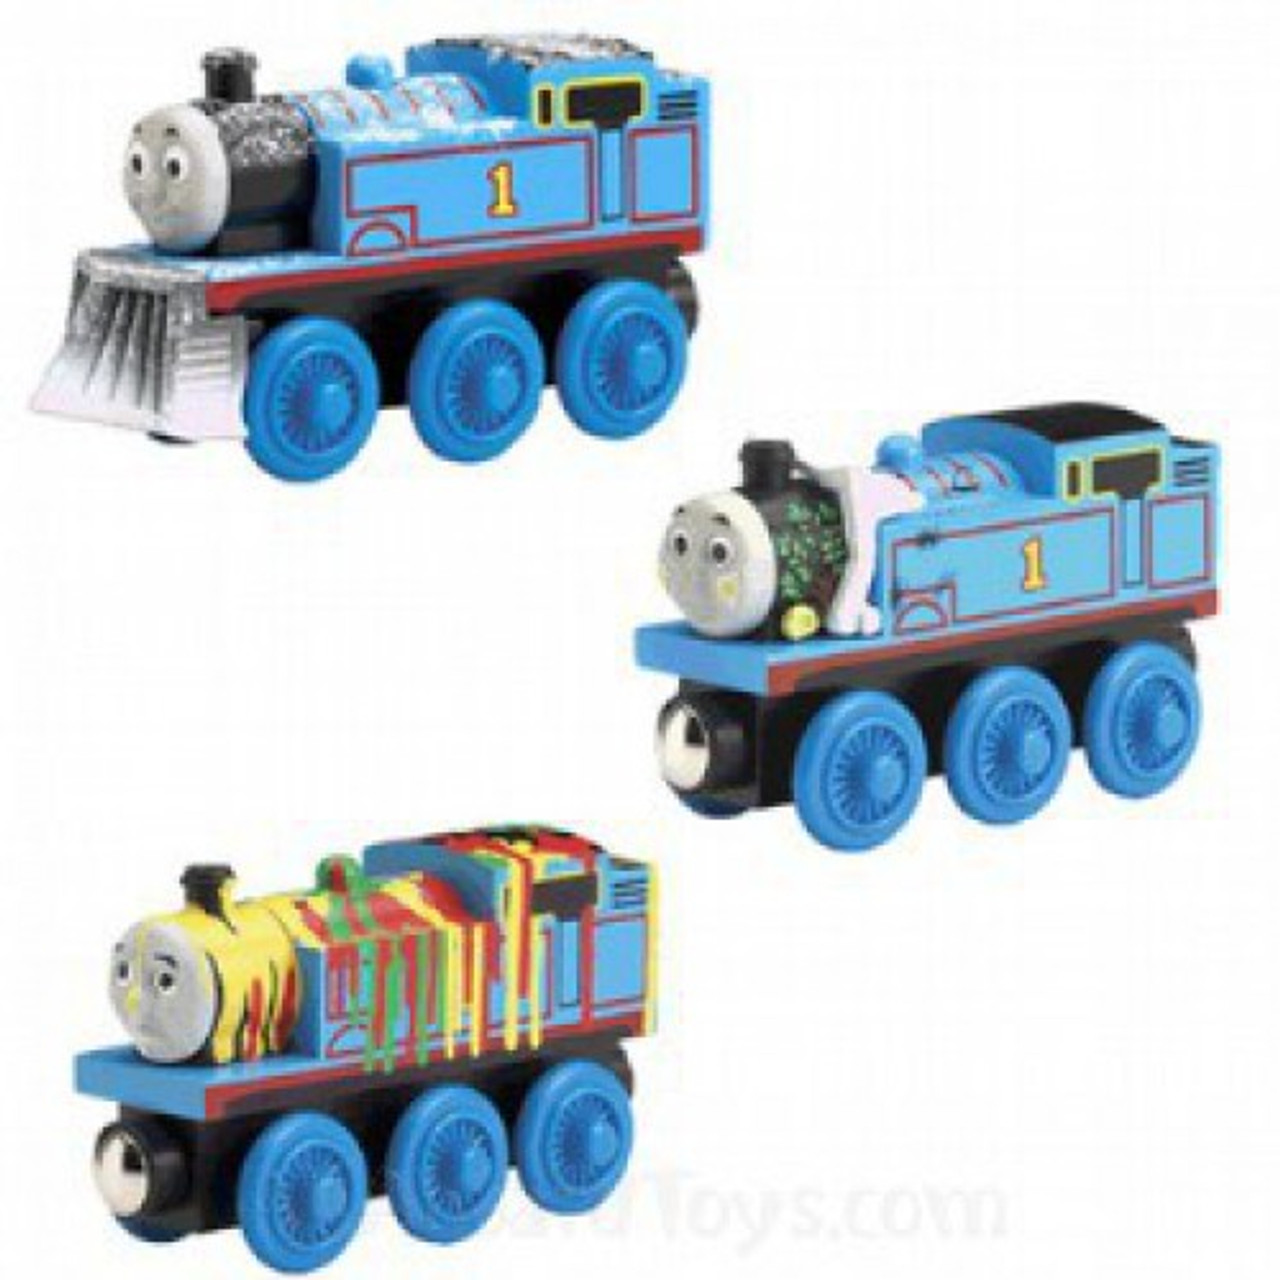 Wooden Railway Thomas Friends Roblox Thomas Friends Wooden Railway Adventures Of Thomas Train Set Damaged Package Learning Curve Toywiz